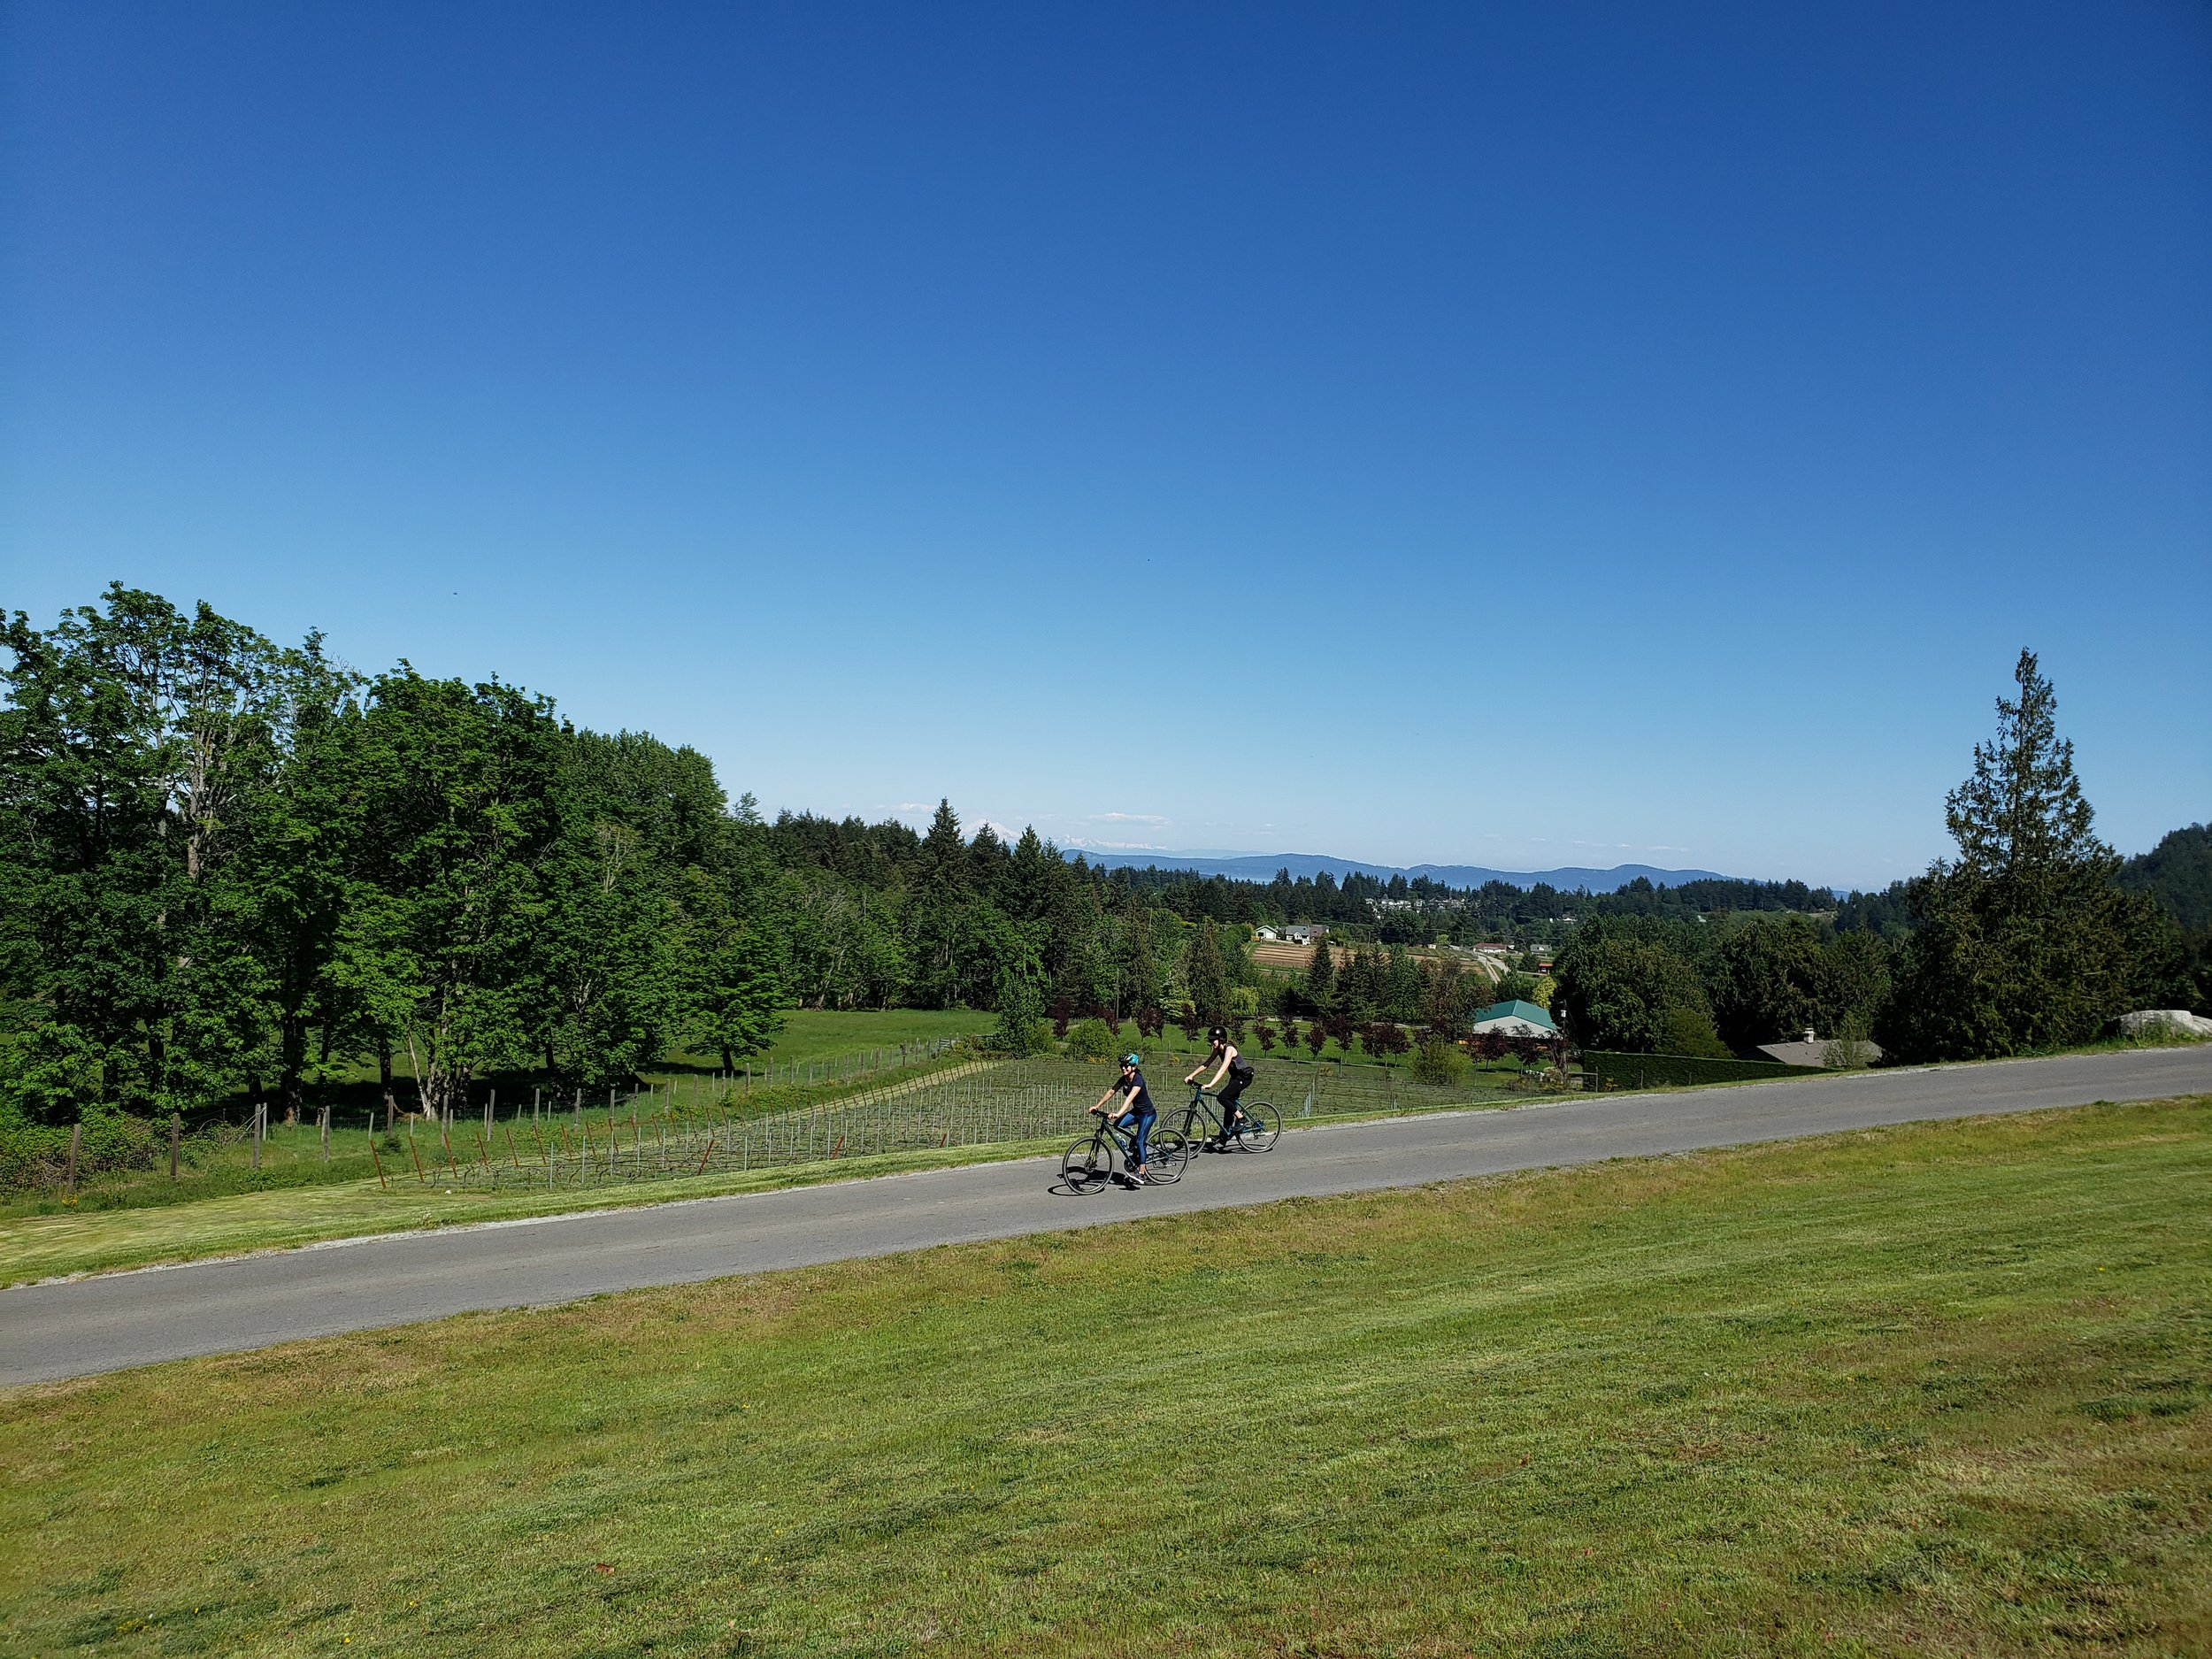 The hill down from the winery offers spectaular vistas over the San Juan Island, Mt. Baker & Olympic Peninsula.